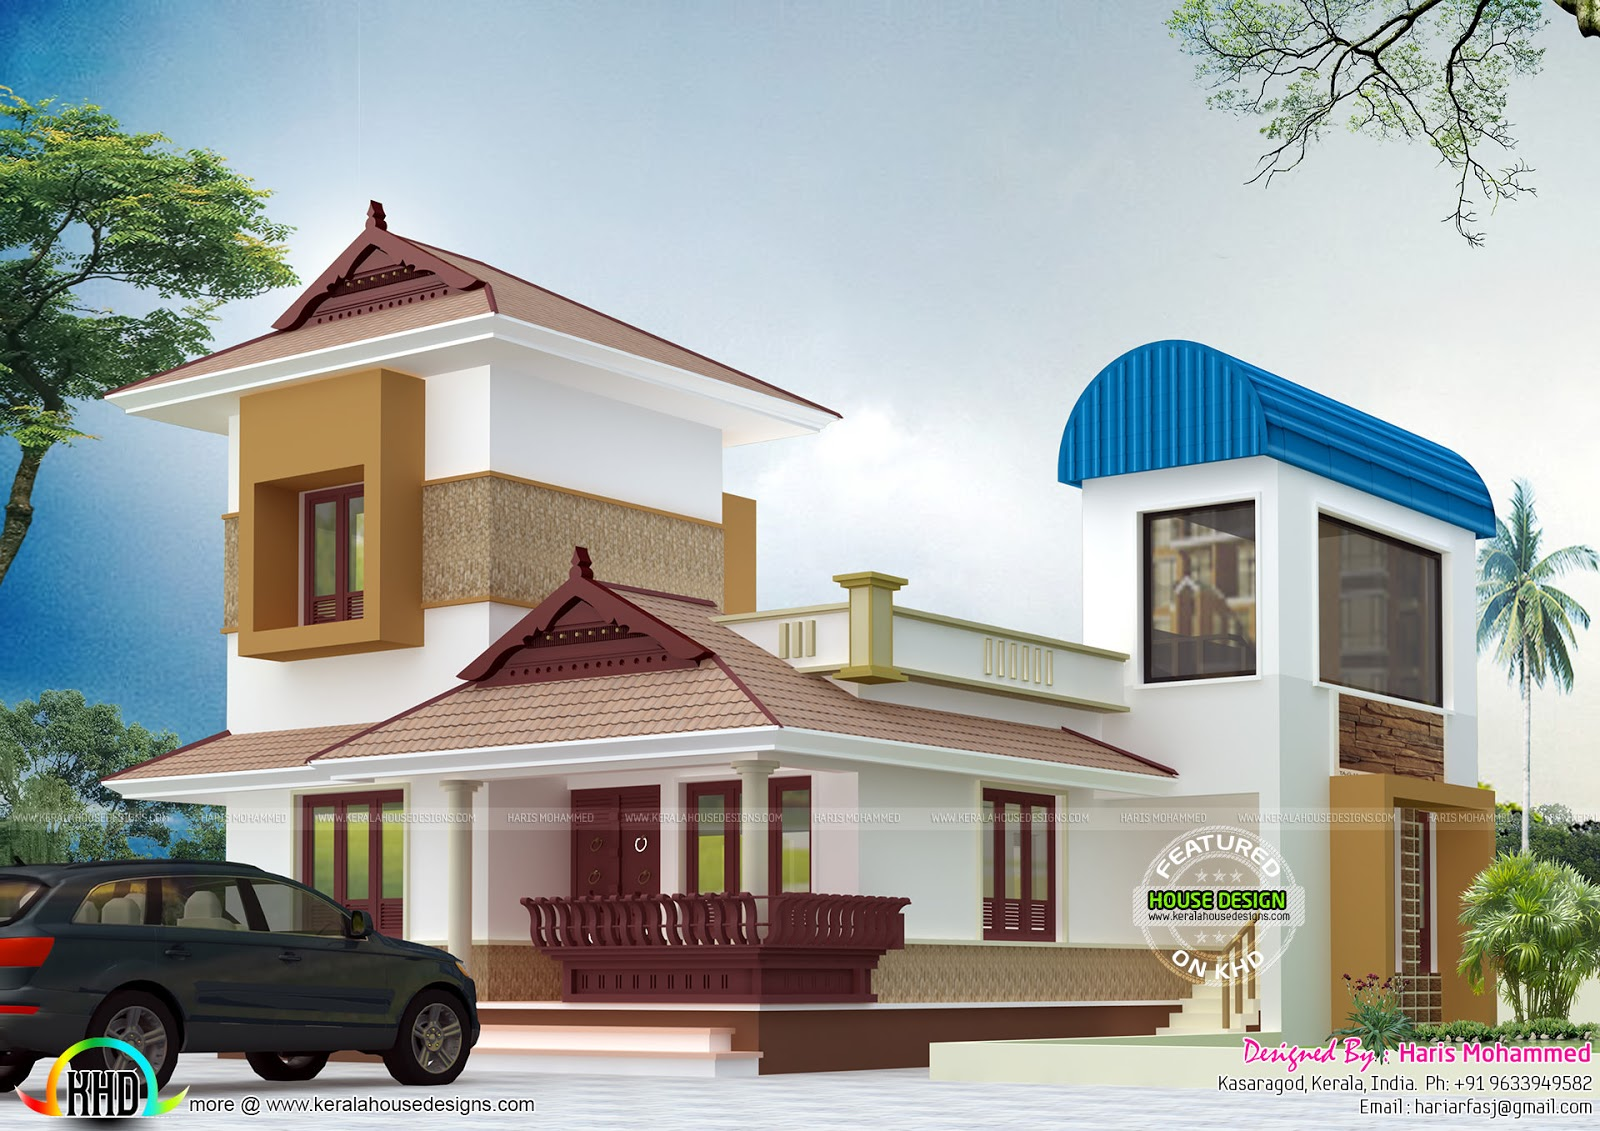 Half traditional half modern home kerala home design and for New traditional house plans